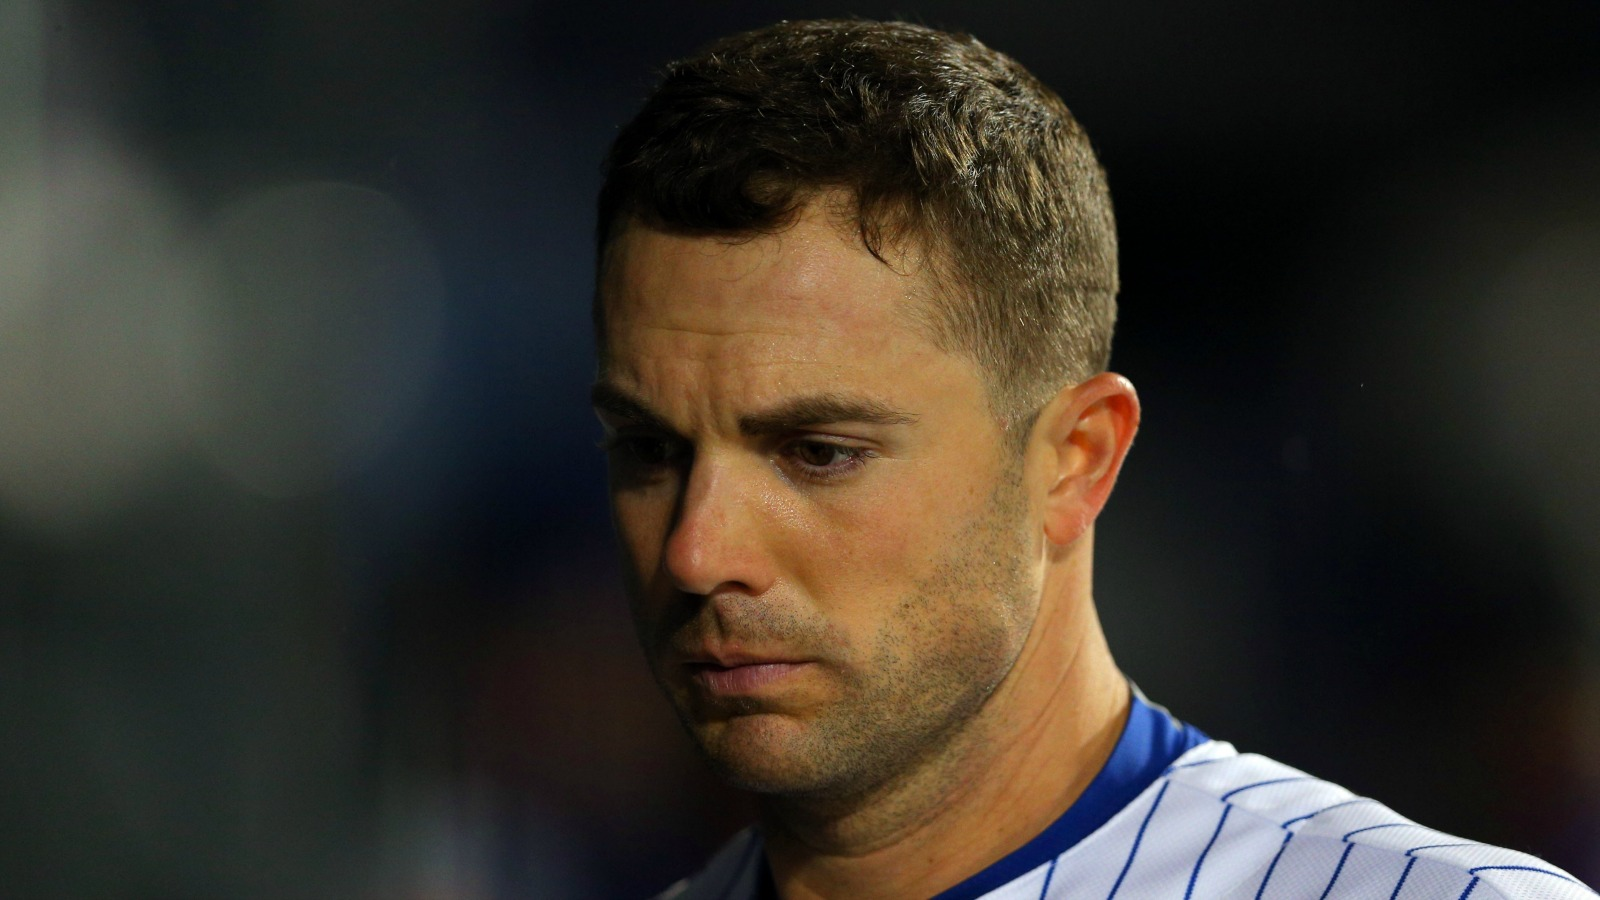 Mets captain David Wright to have neck surgery that could end his season